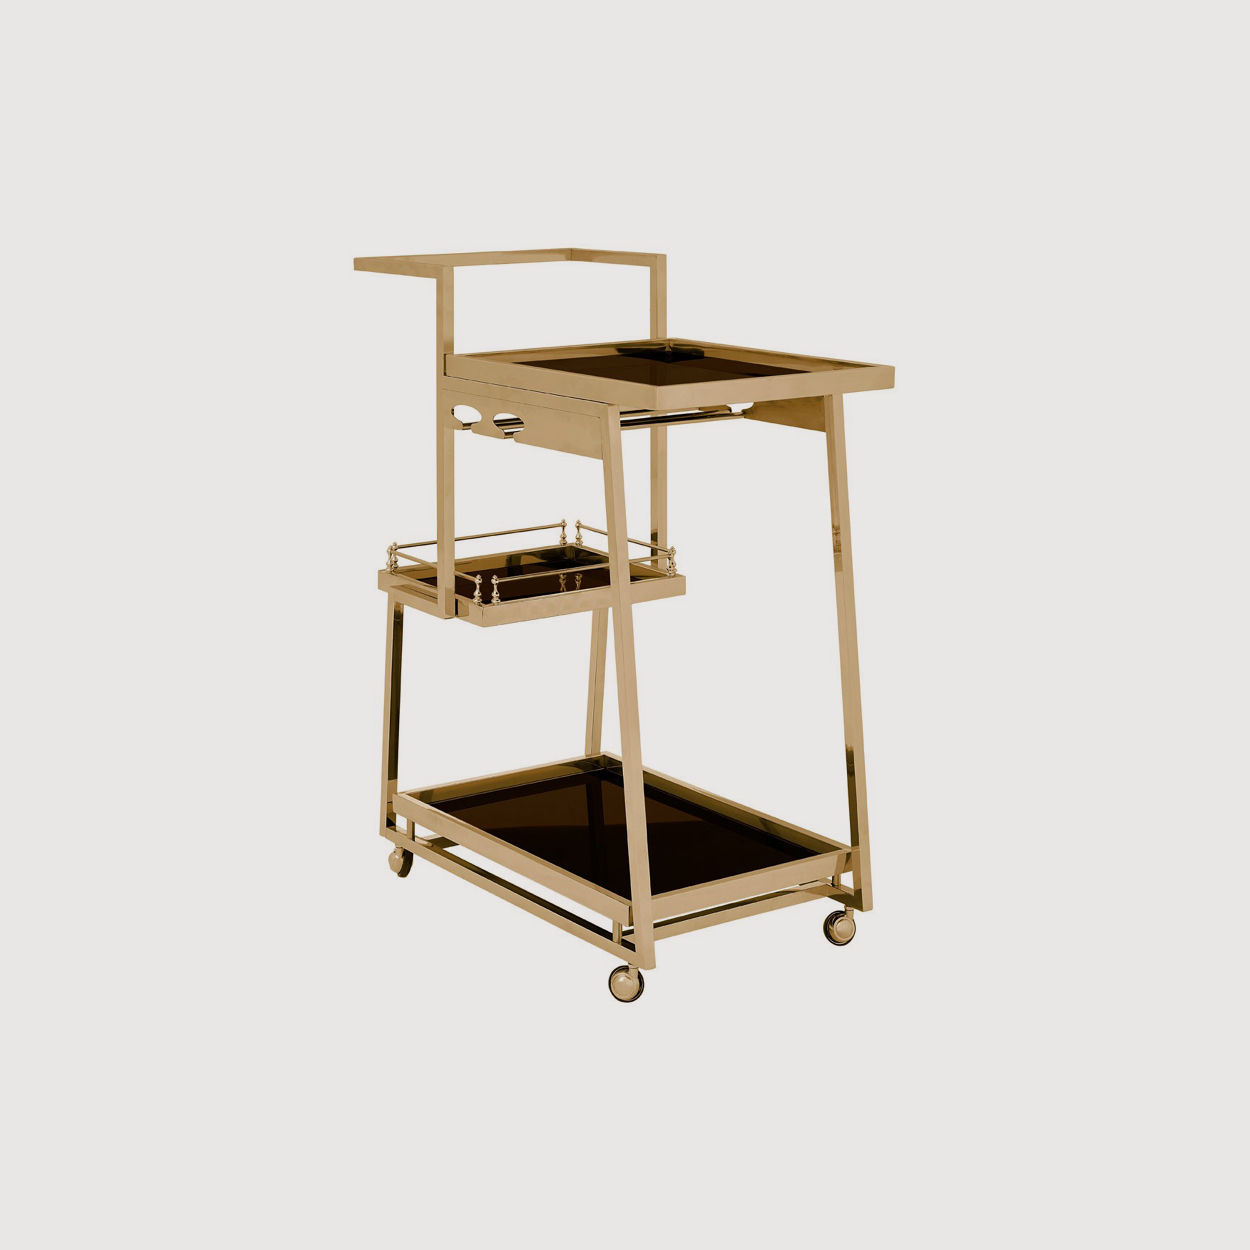 Novo Gold Drinks Trolley gallery image